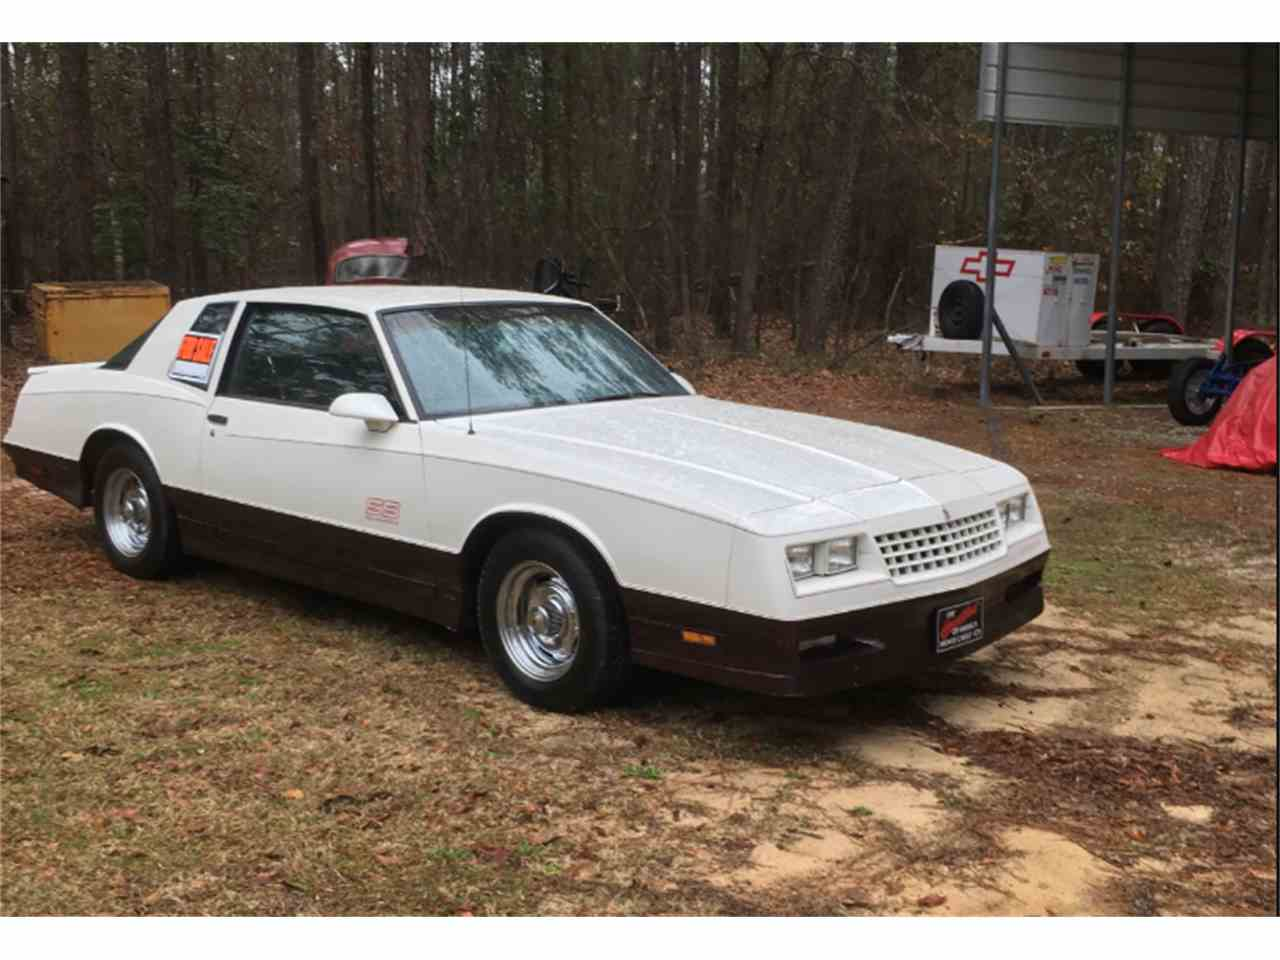 All Chevy 1988 chevrolet monte carlo ss for sale : 1986 to 1988 Chevrolet Monte Carlo SS for Sale